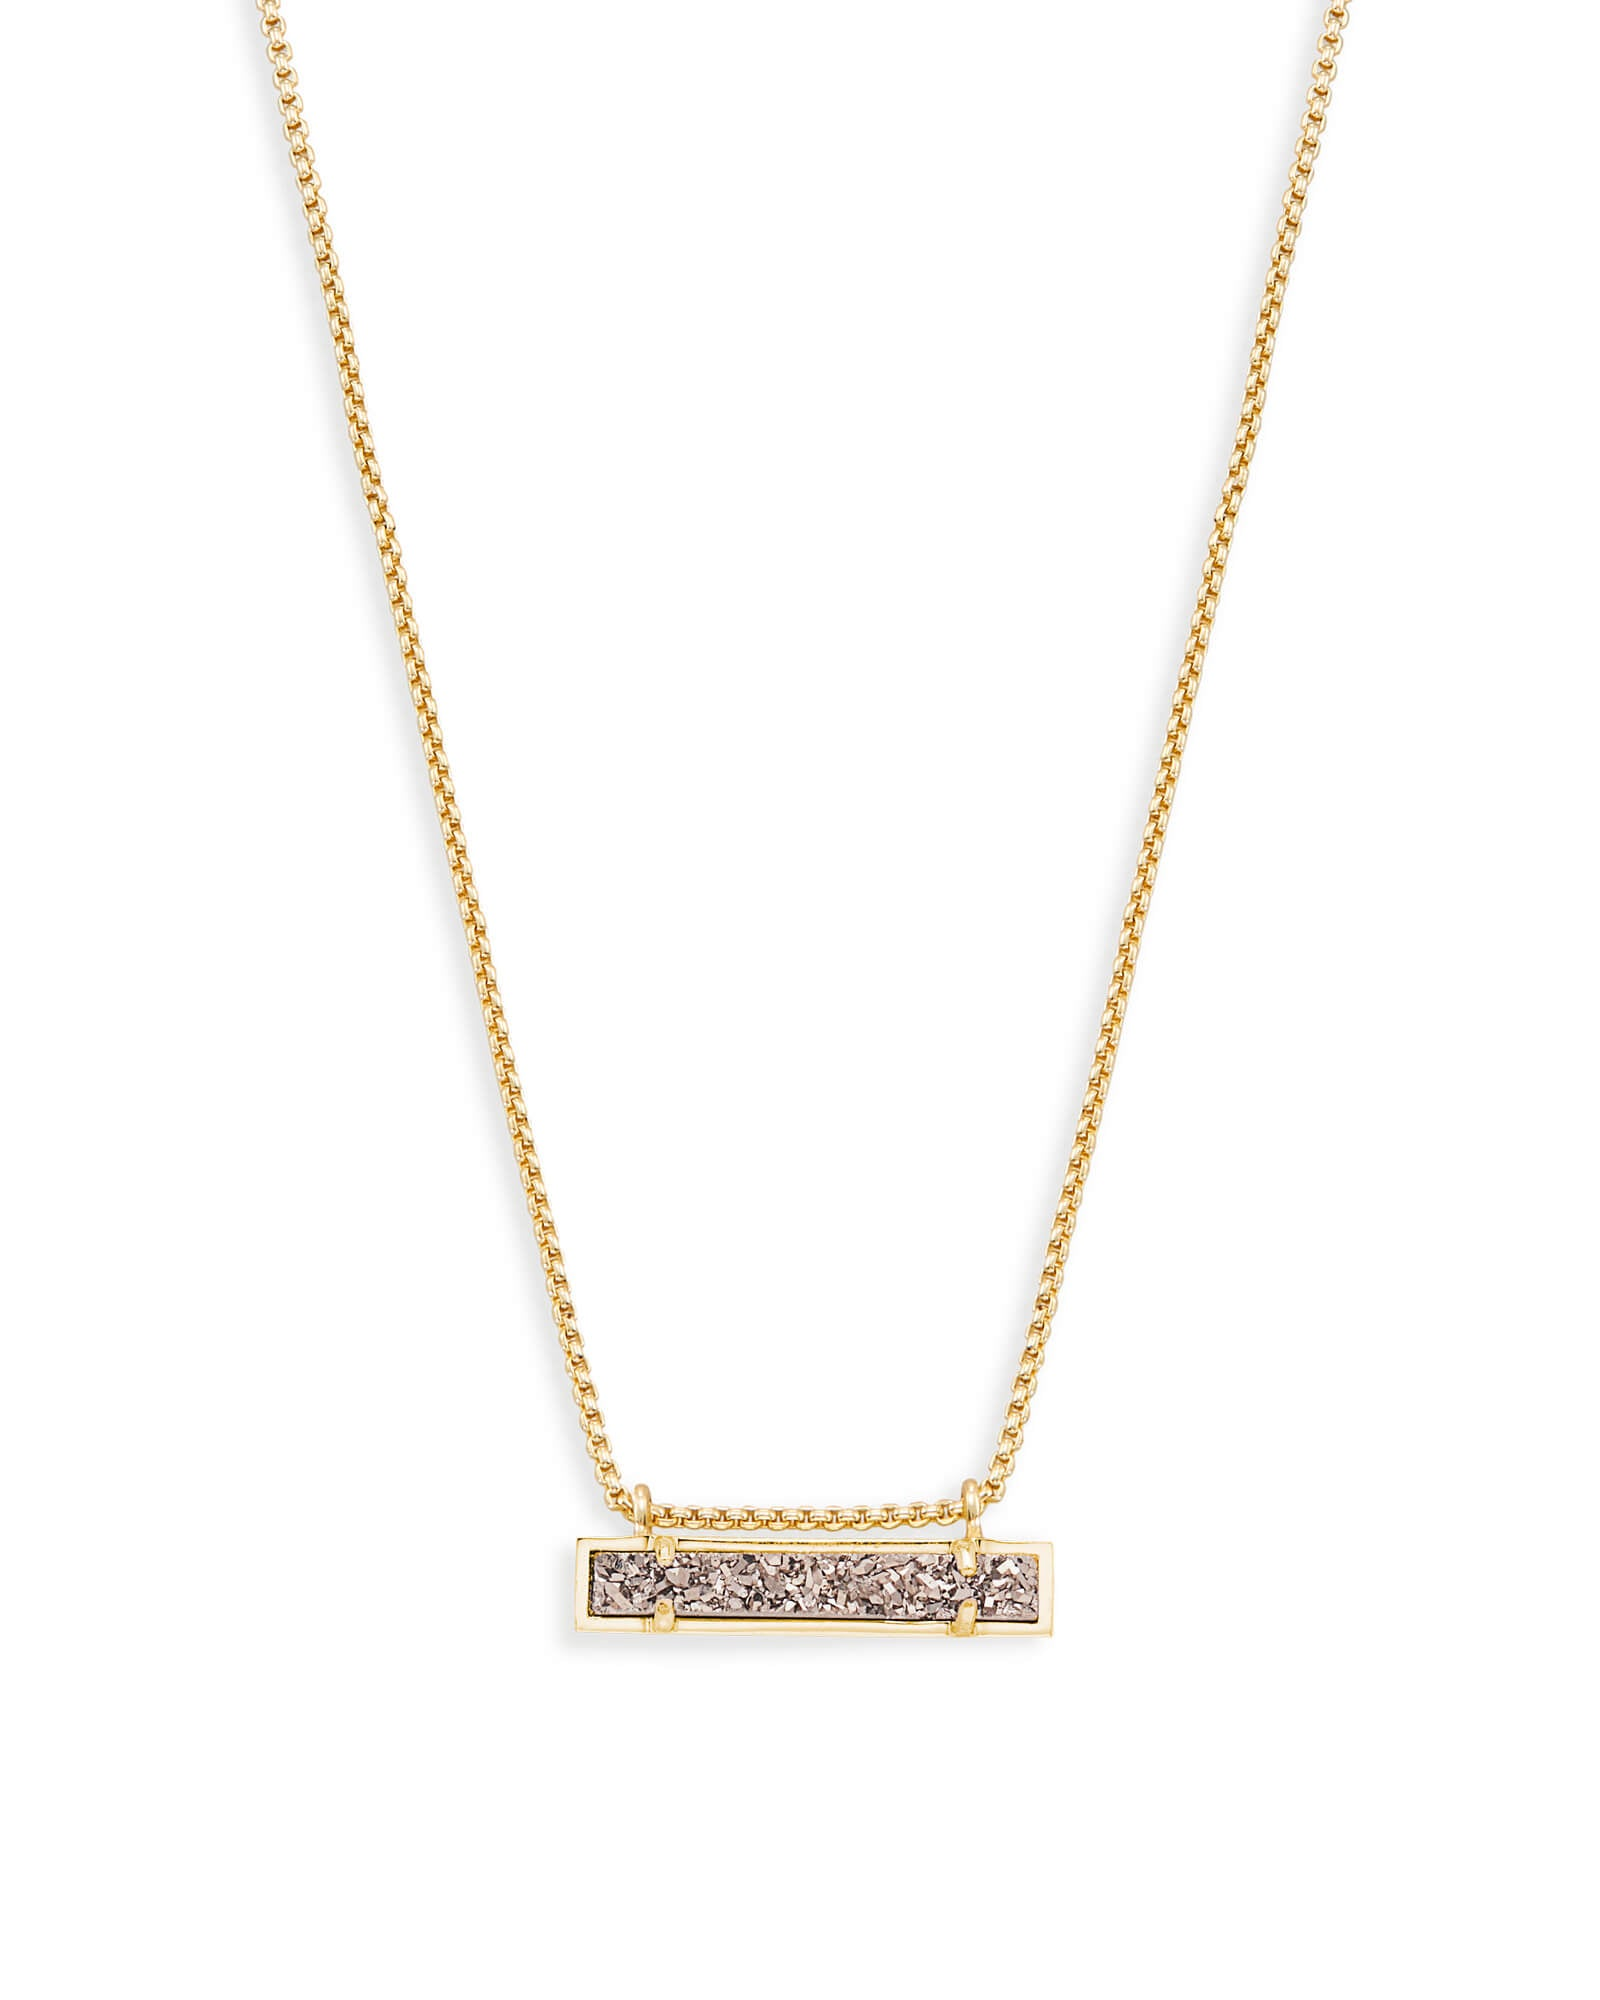 Kendra Scott Leanor Necklace - Showroom56